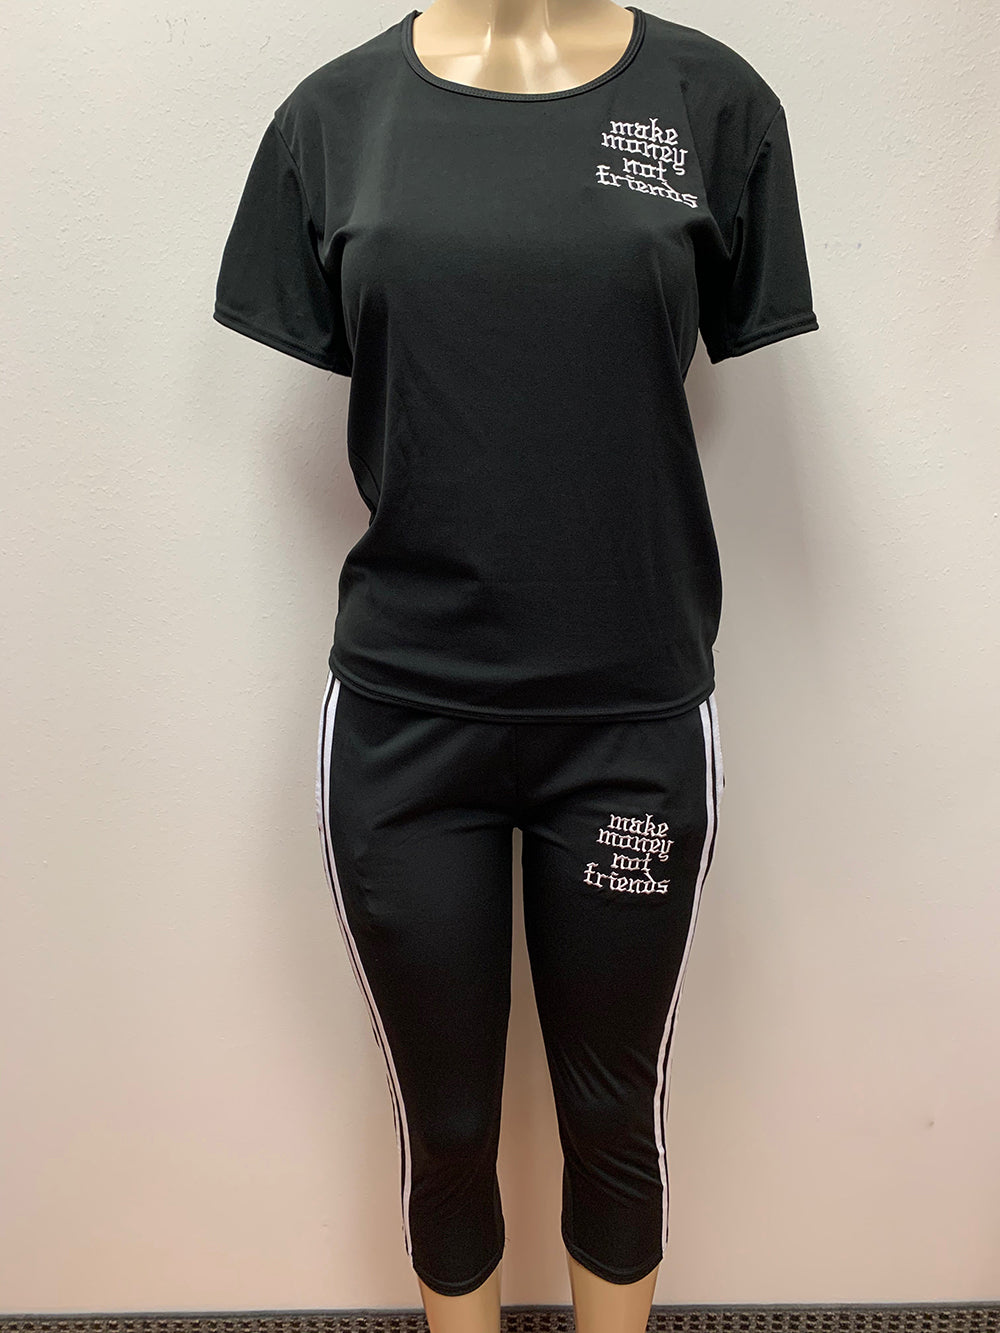 Flykonic Ladies Fitness Outfit - Make Money Not Friends in Black with White lettering.